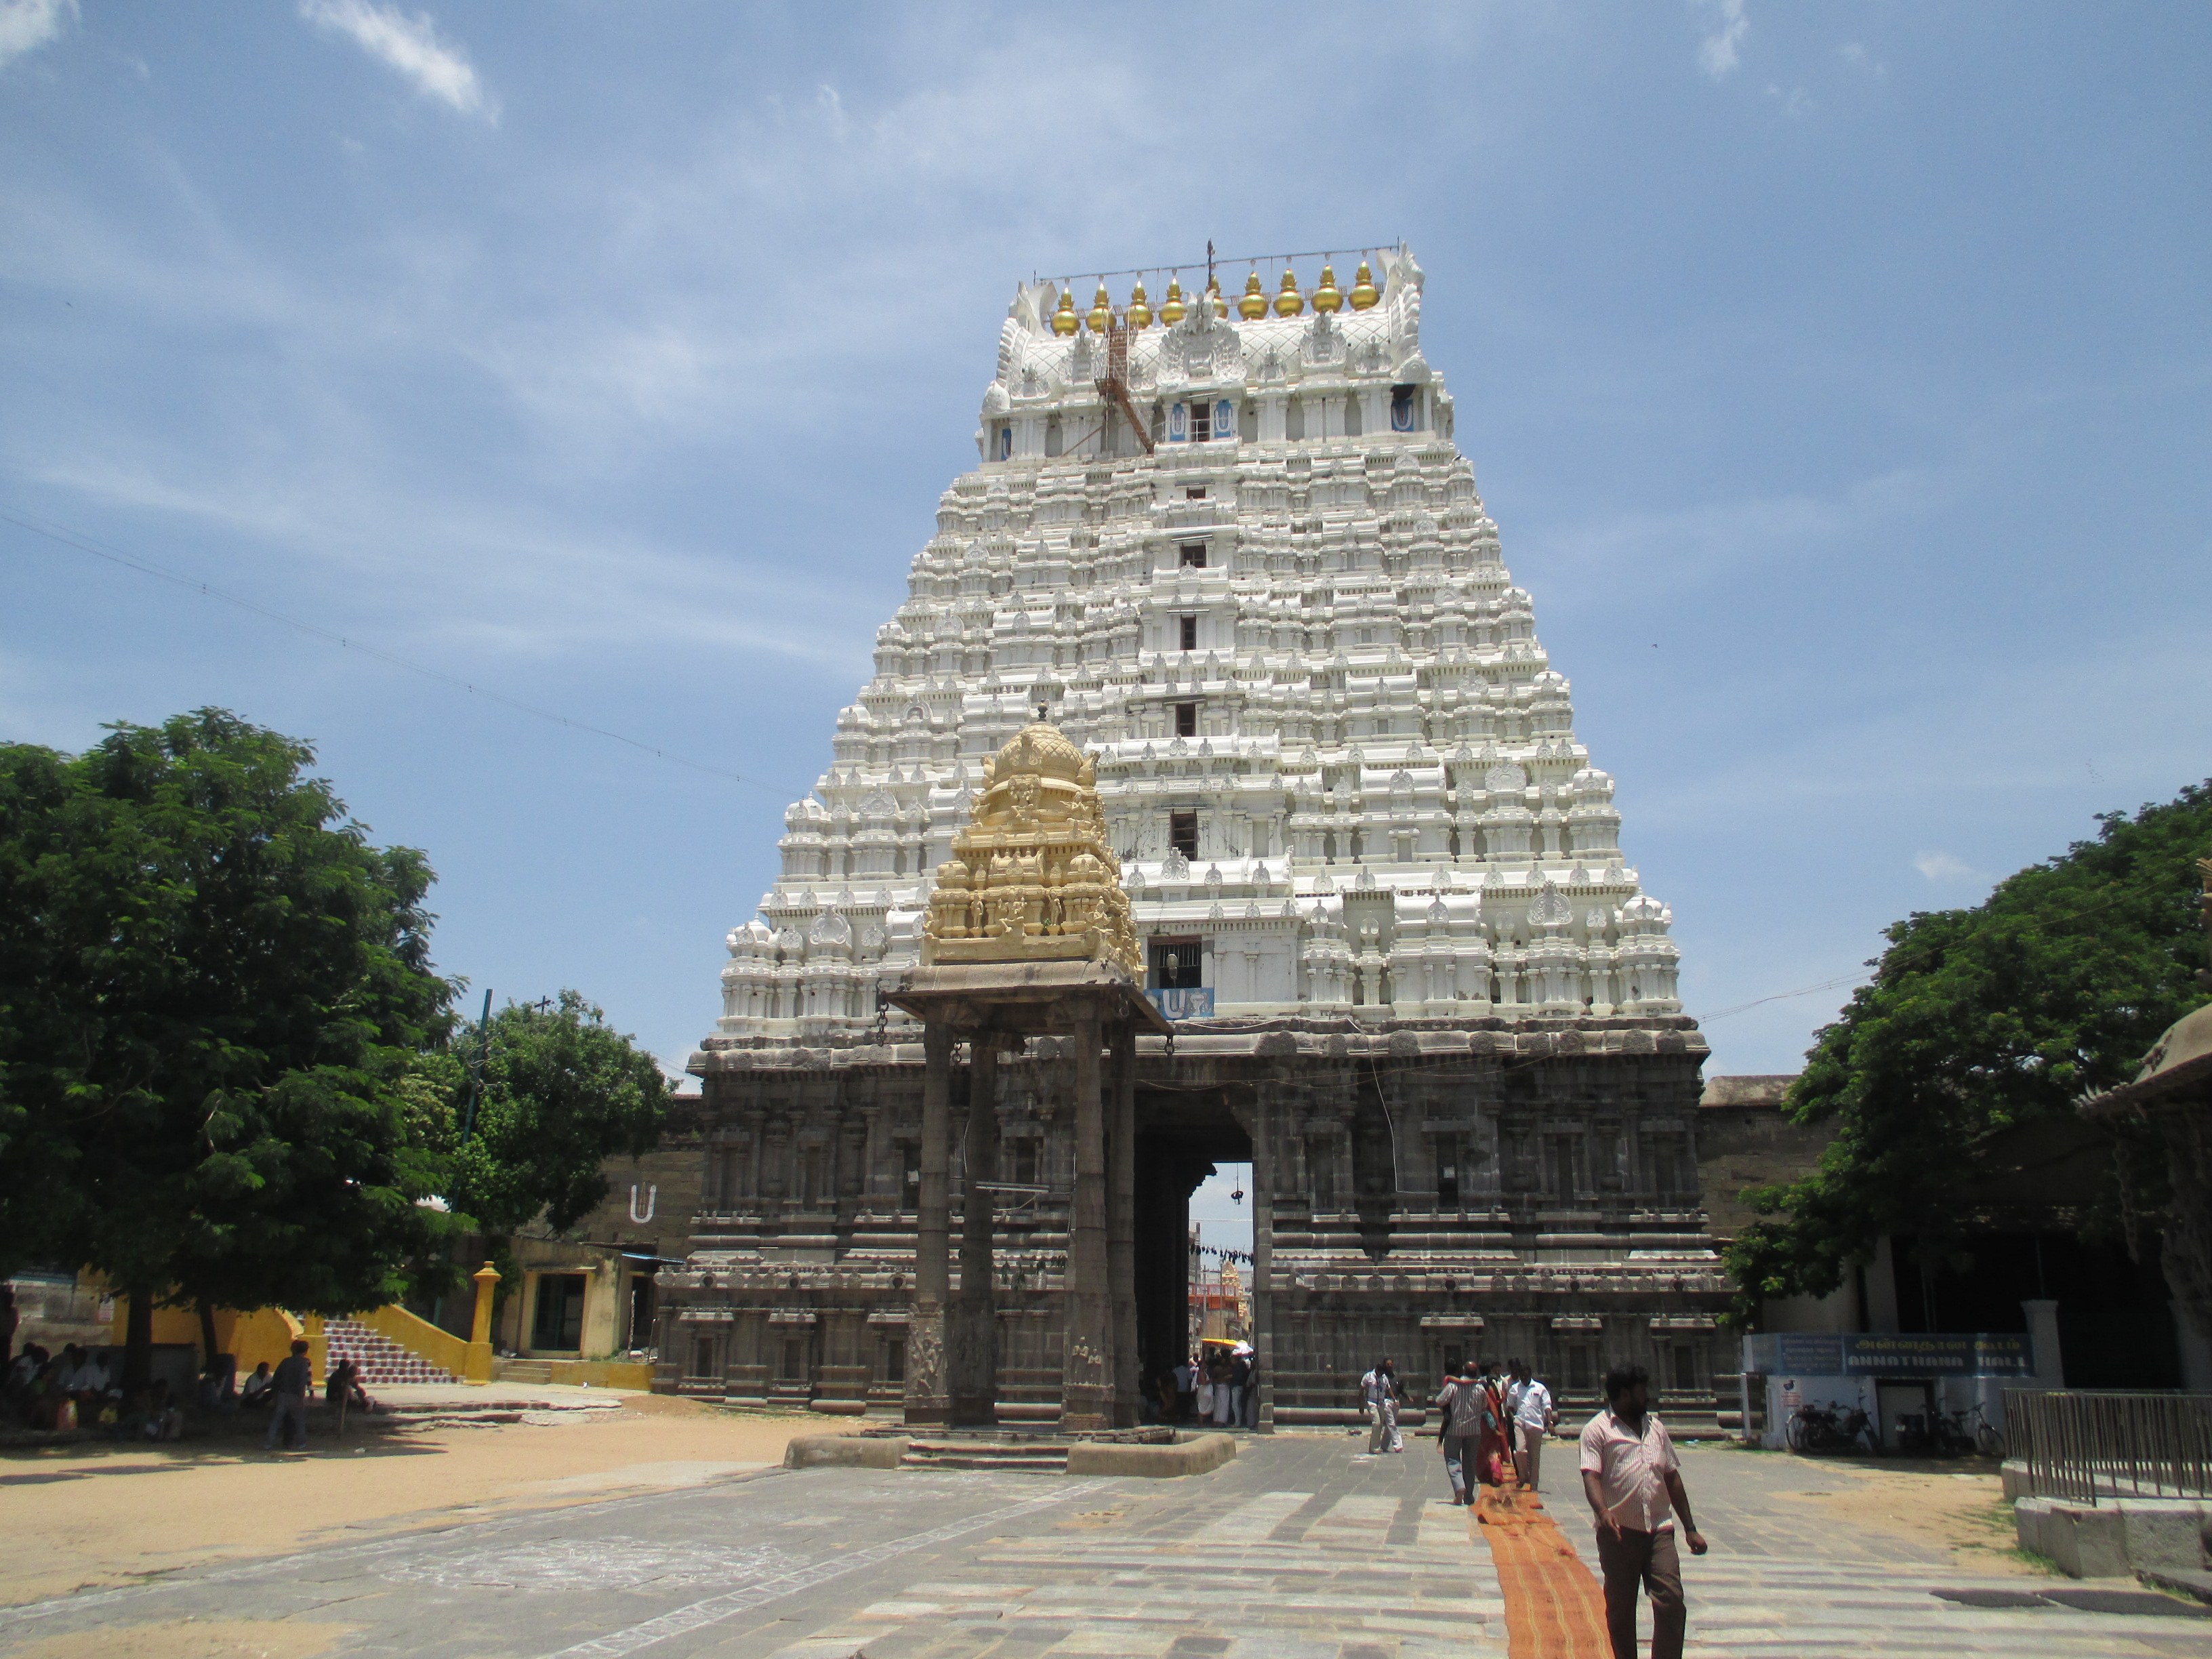 Varadharaja Perumal temple, one of the famous Kanchipuram Temples at Kanchipuram near Chennai